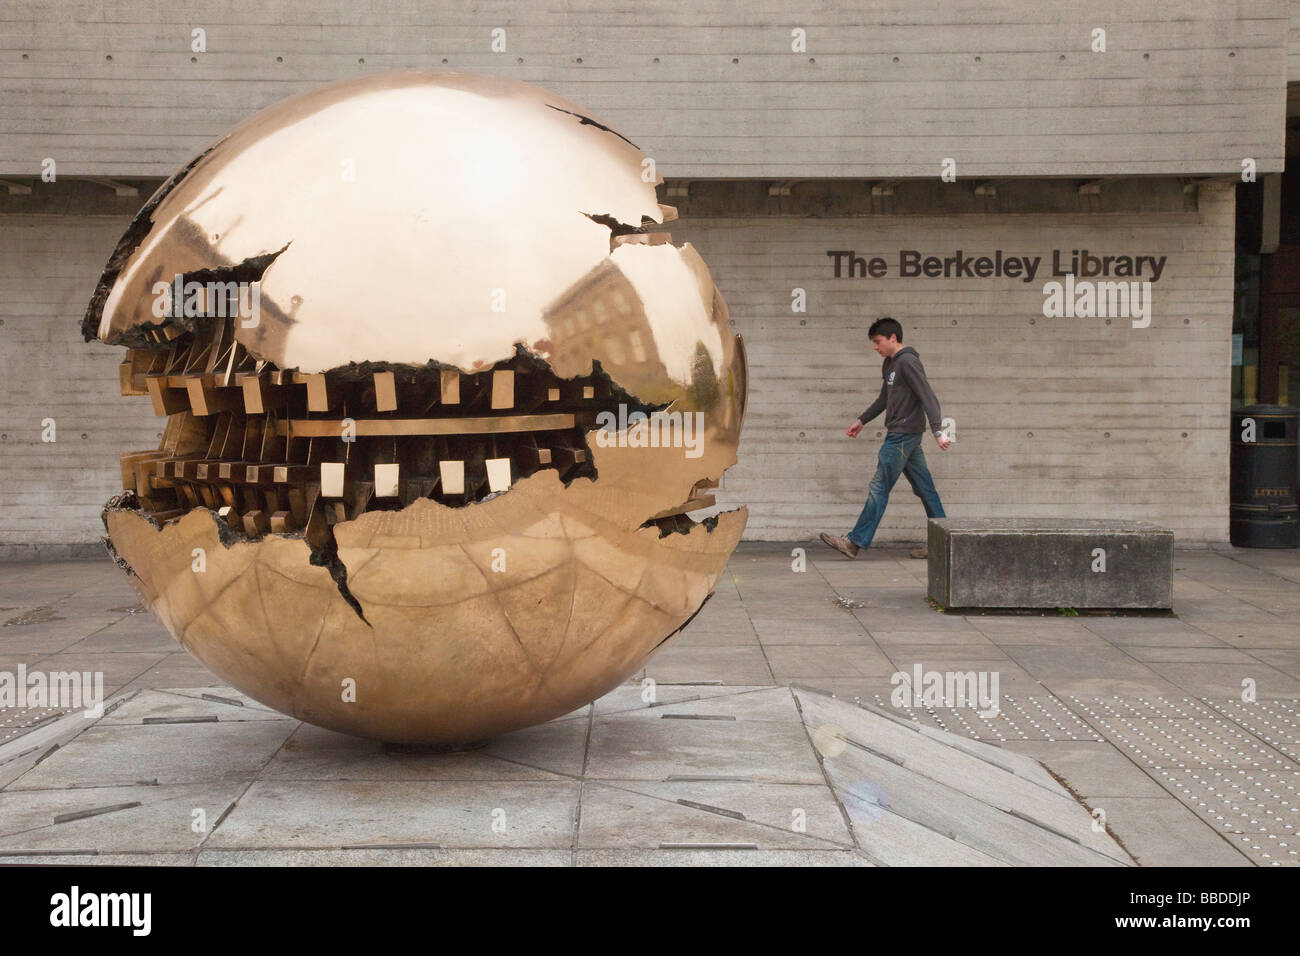 Sphere within a Sphere Sculpture by italian sculptor Arnaldo Pomodoro outside Berkeley Library Trinity College Dublin - Stock Image